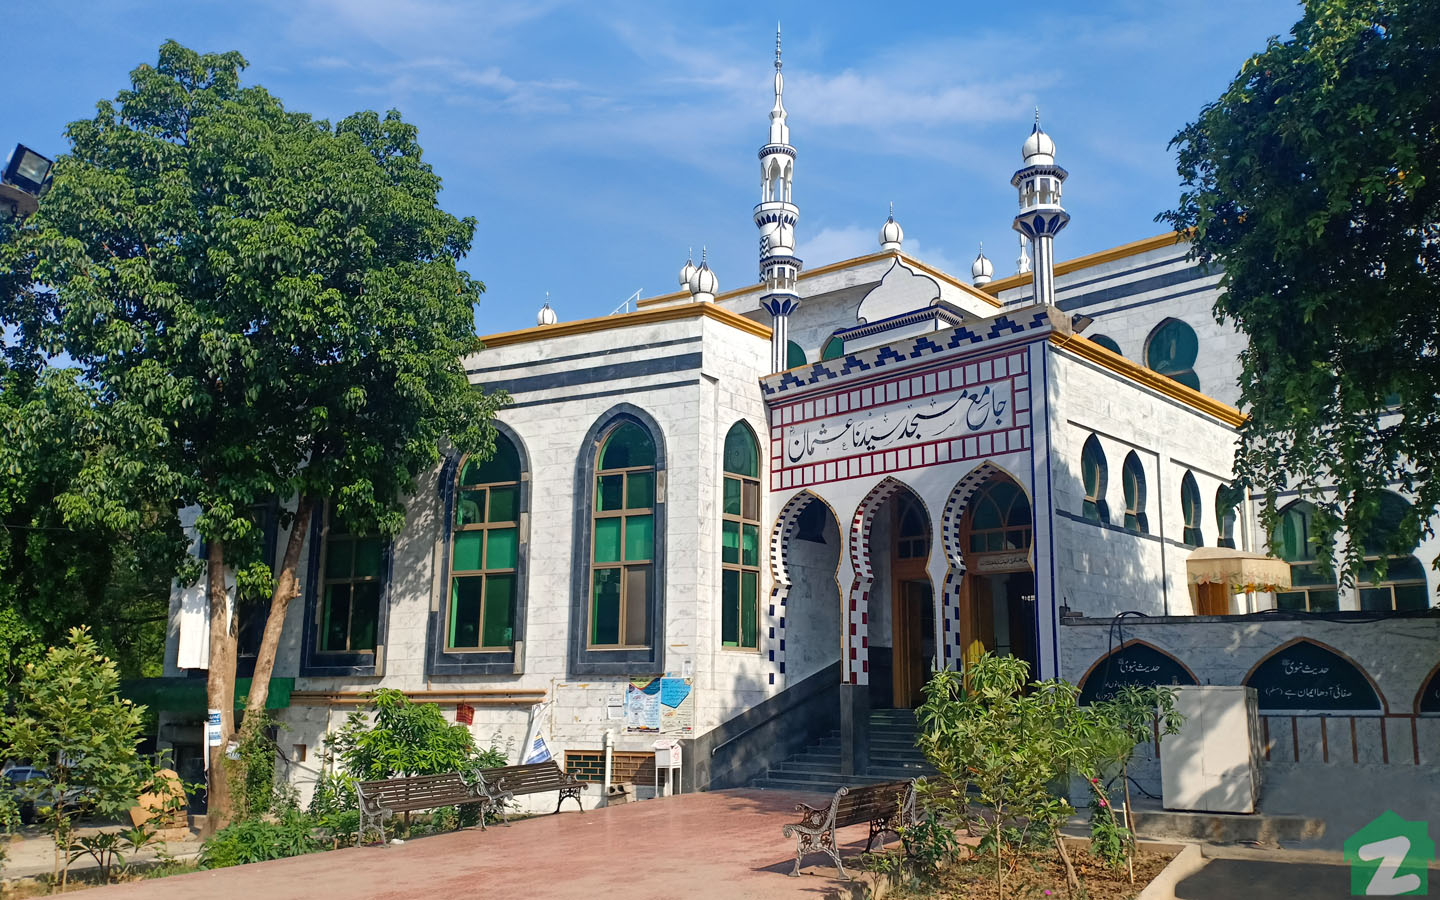 The society is home to numerous spacious mosques where residents can go to offer their prayers conveniently